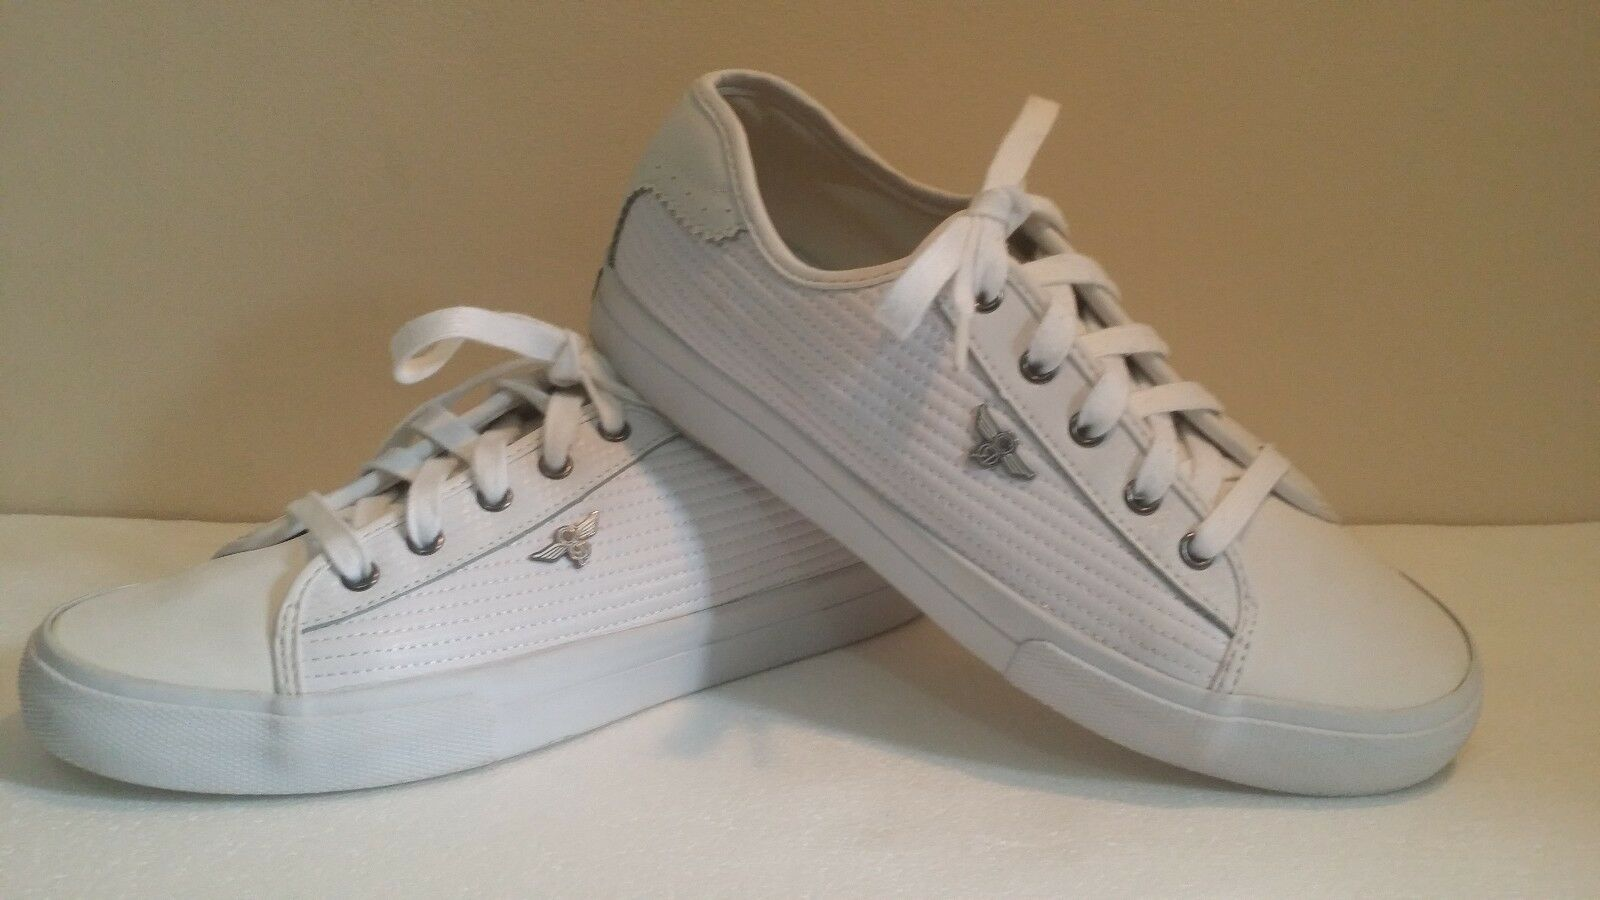 Men's Creative Recreations White Ripple Trainers Size 8.